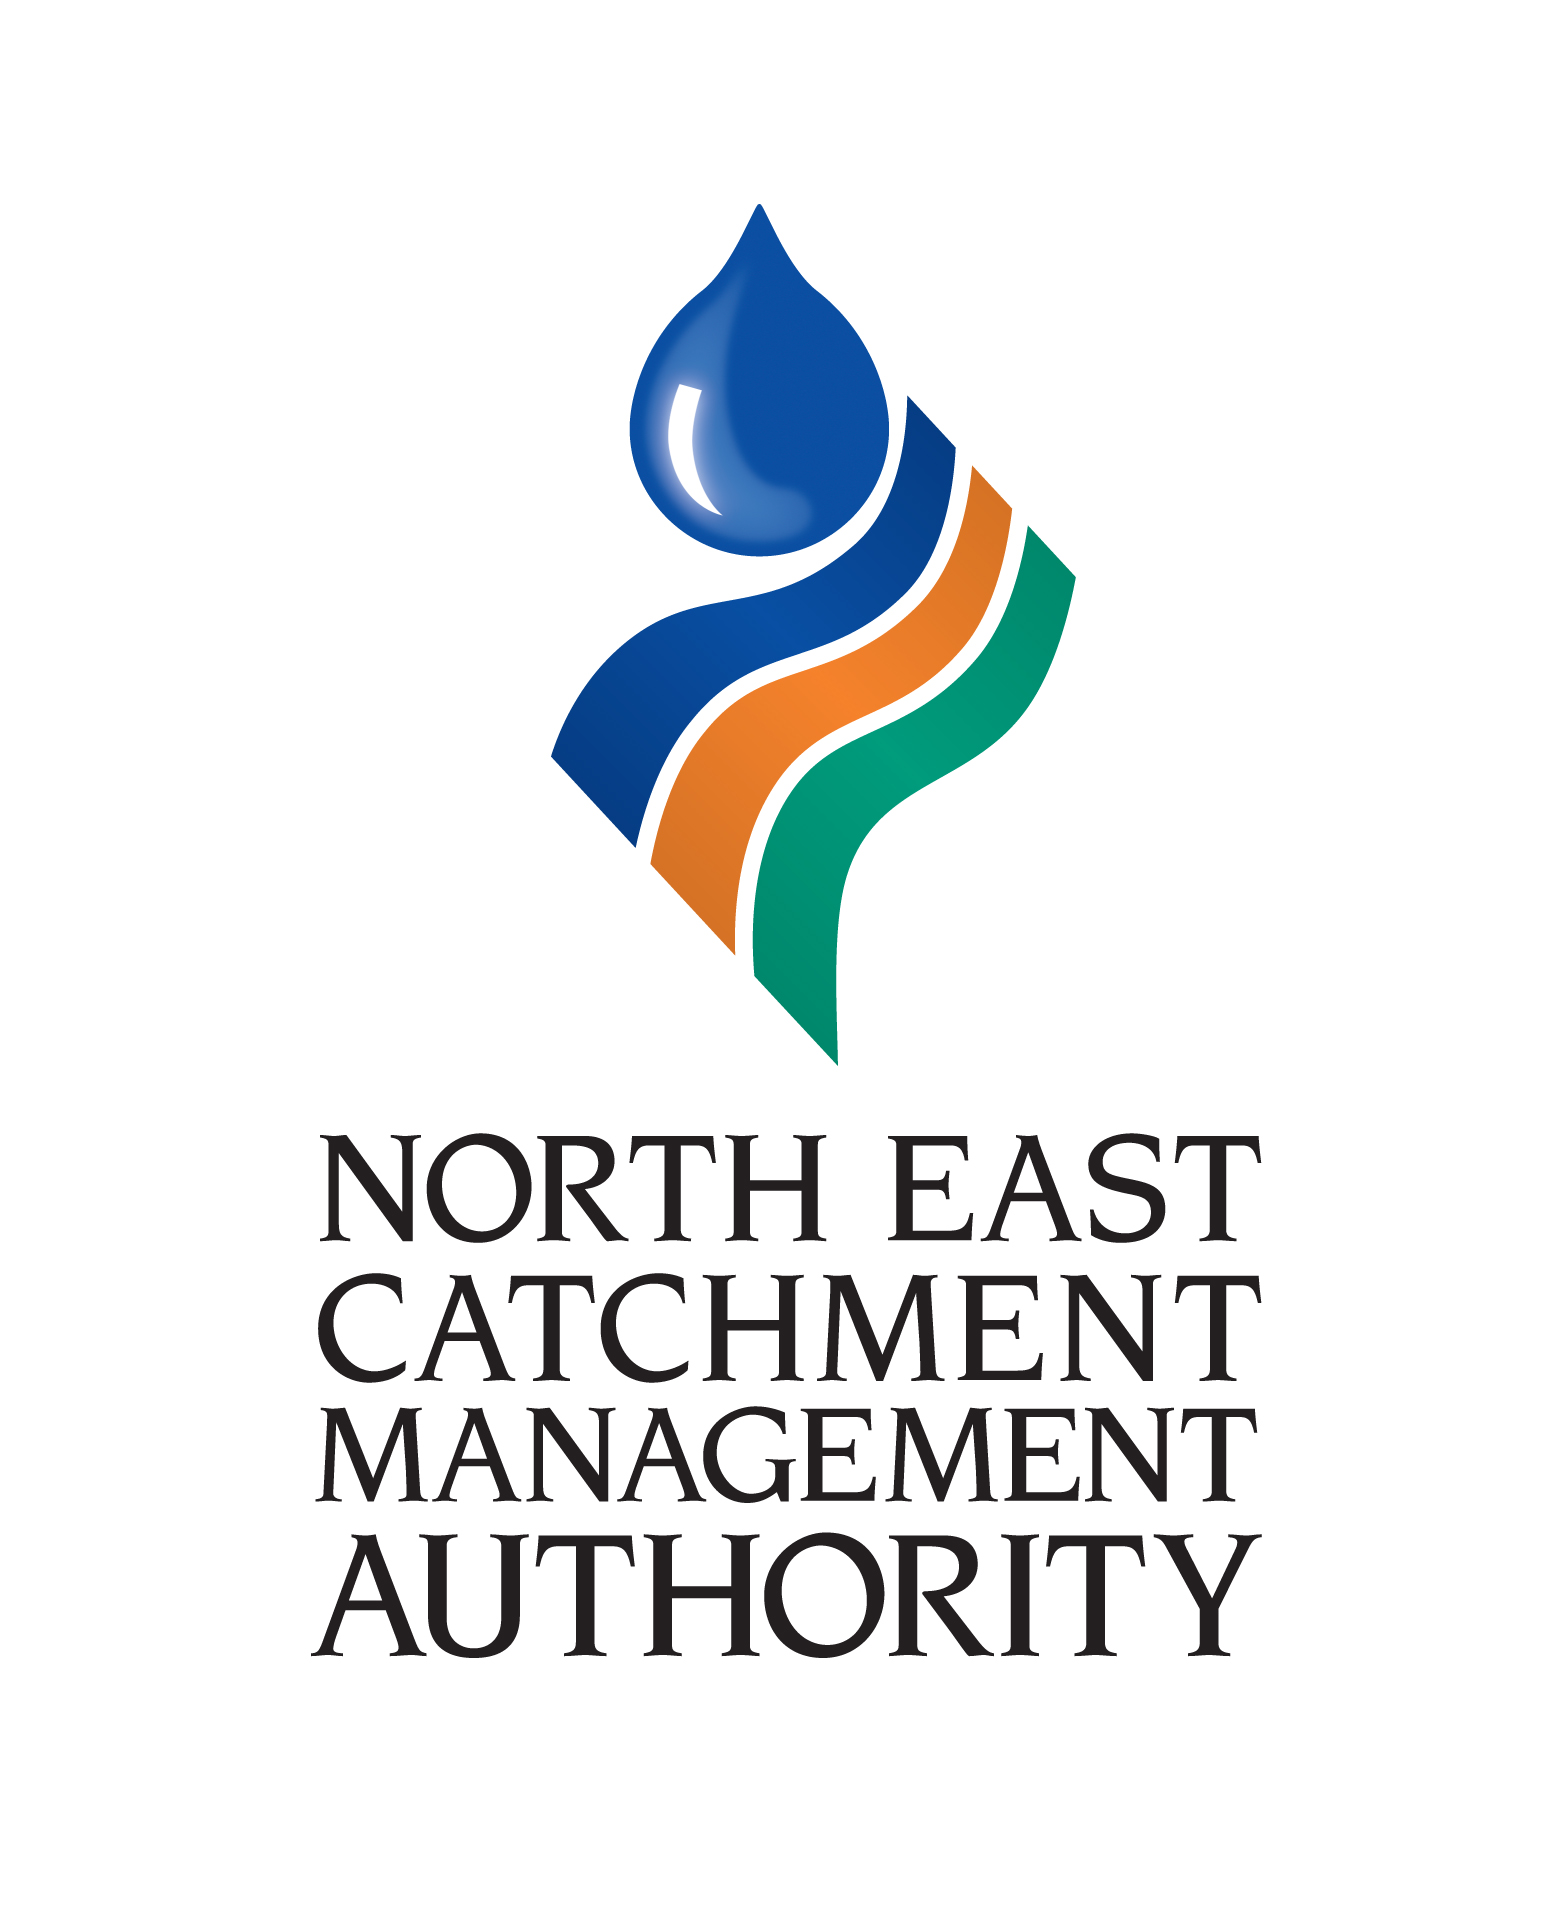 North East Catchment Management Authority